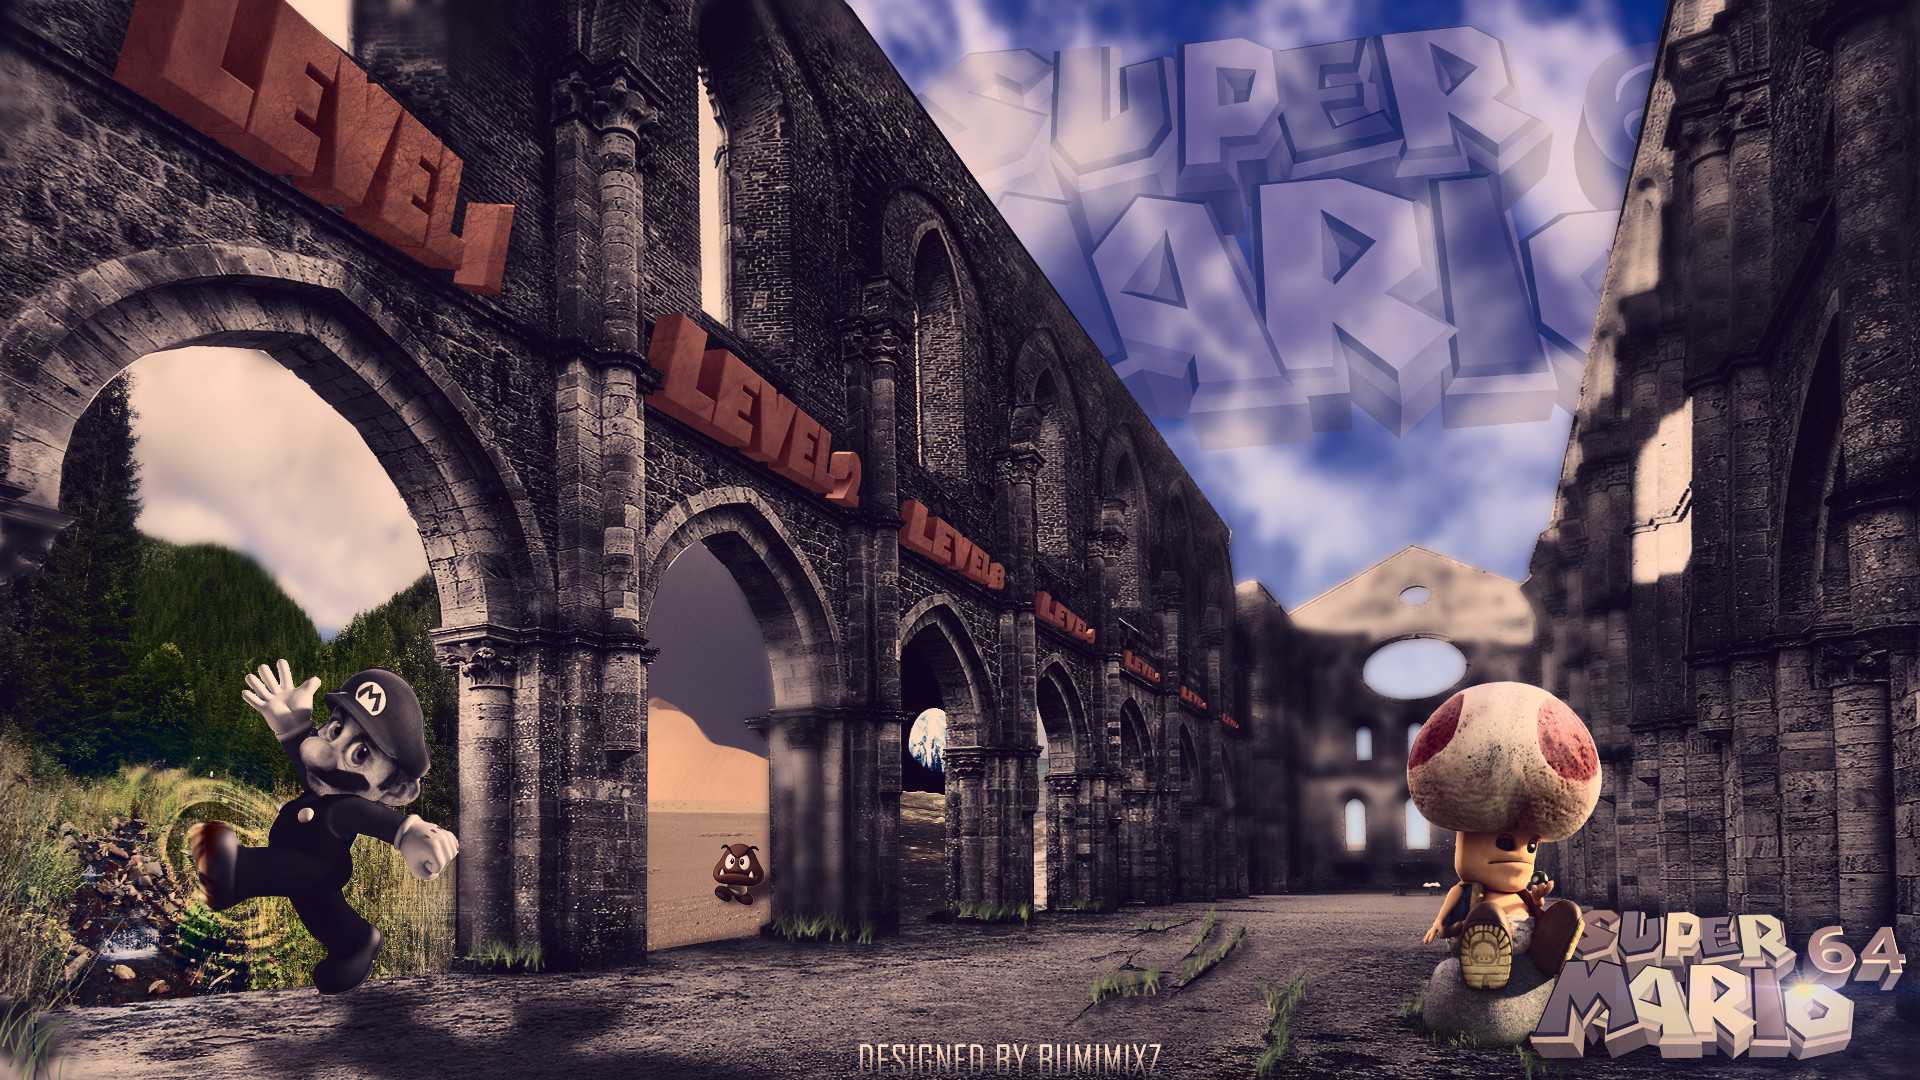 Res: 1920x1080, Super mario 64 real life by Bumipoo on DeviantArt